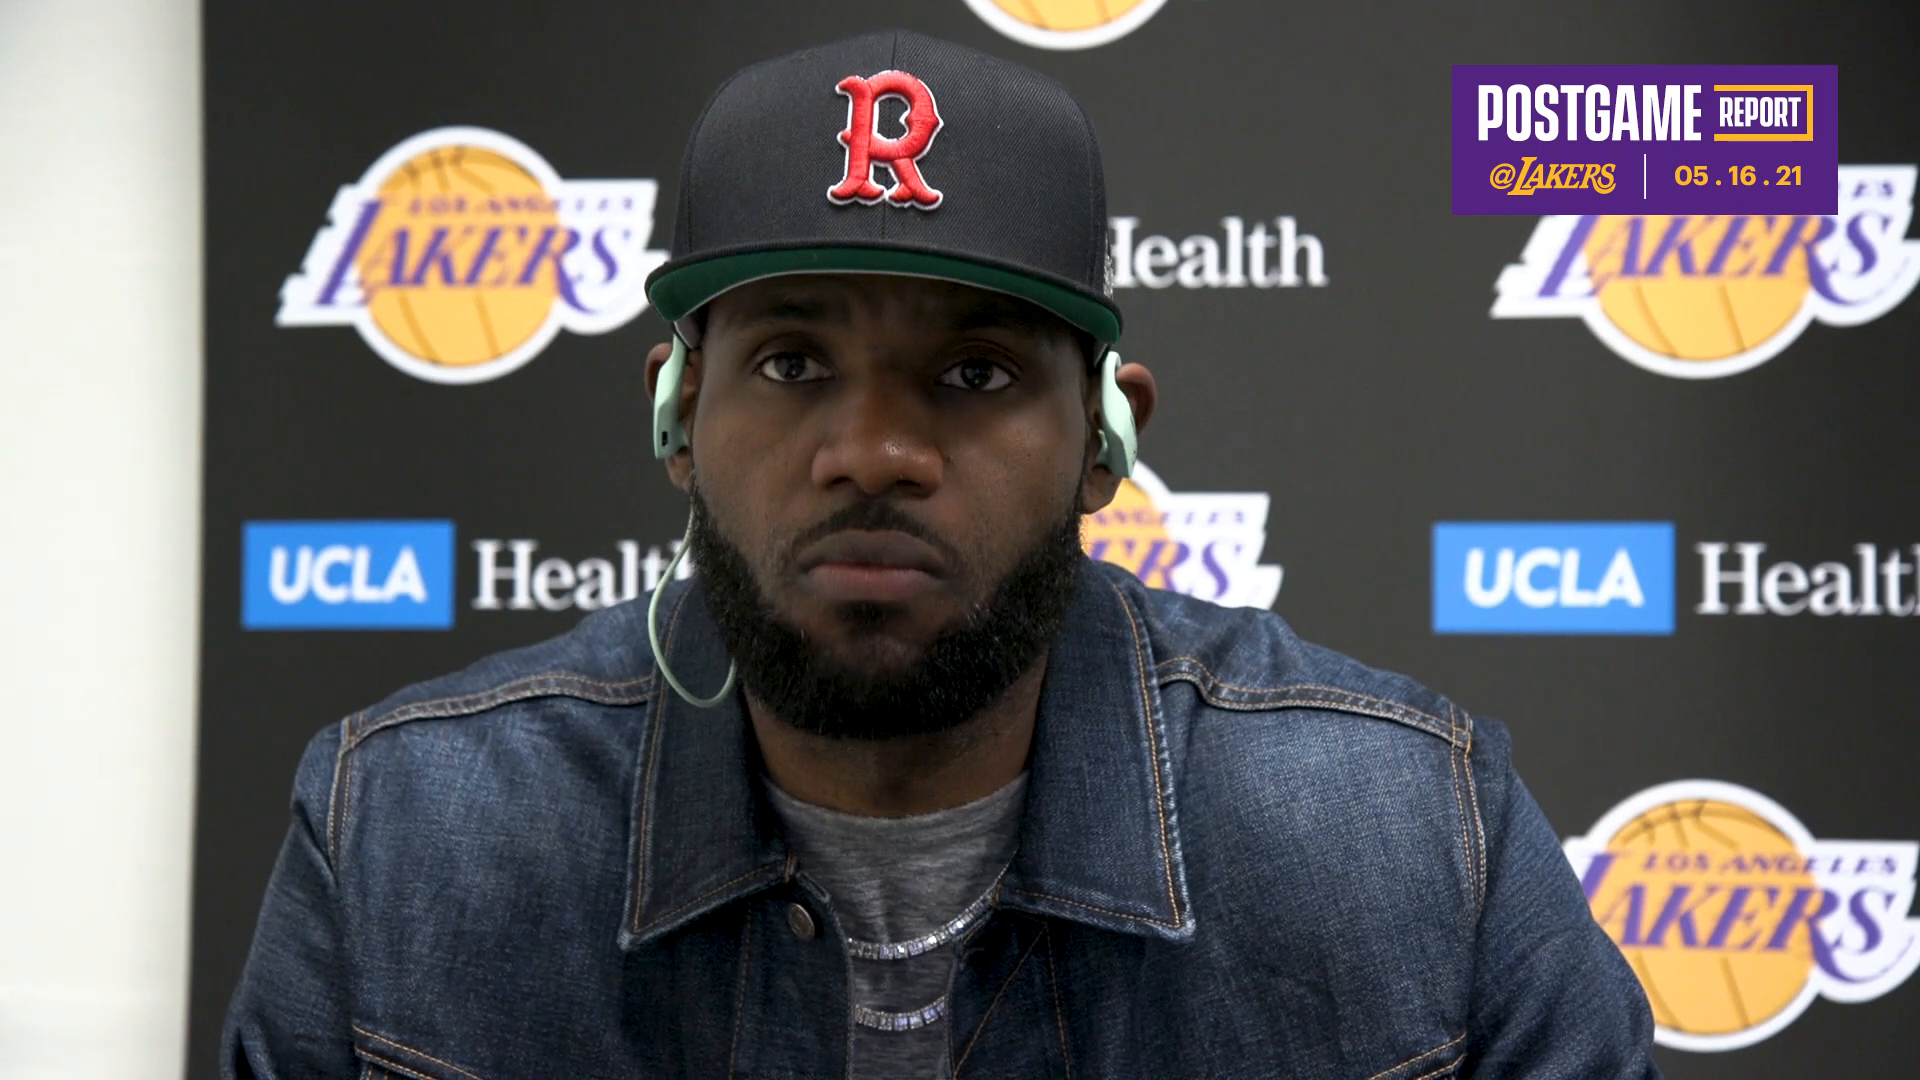 Lakers Postgame: LeBron James (5/16/21)